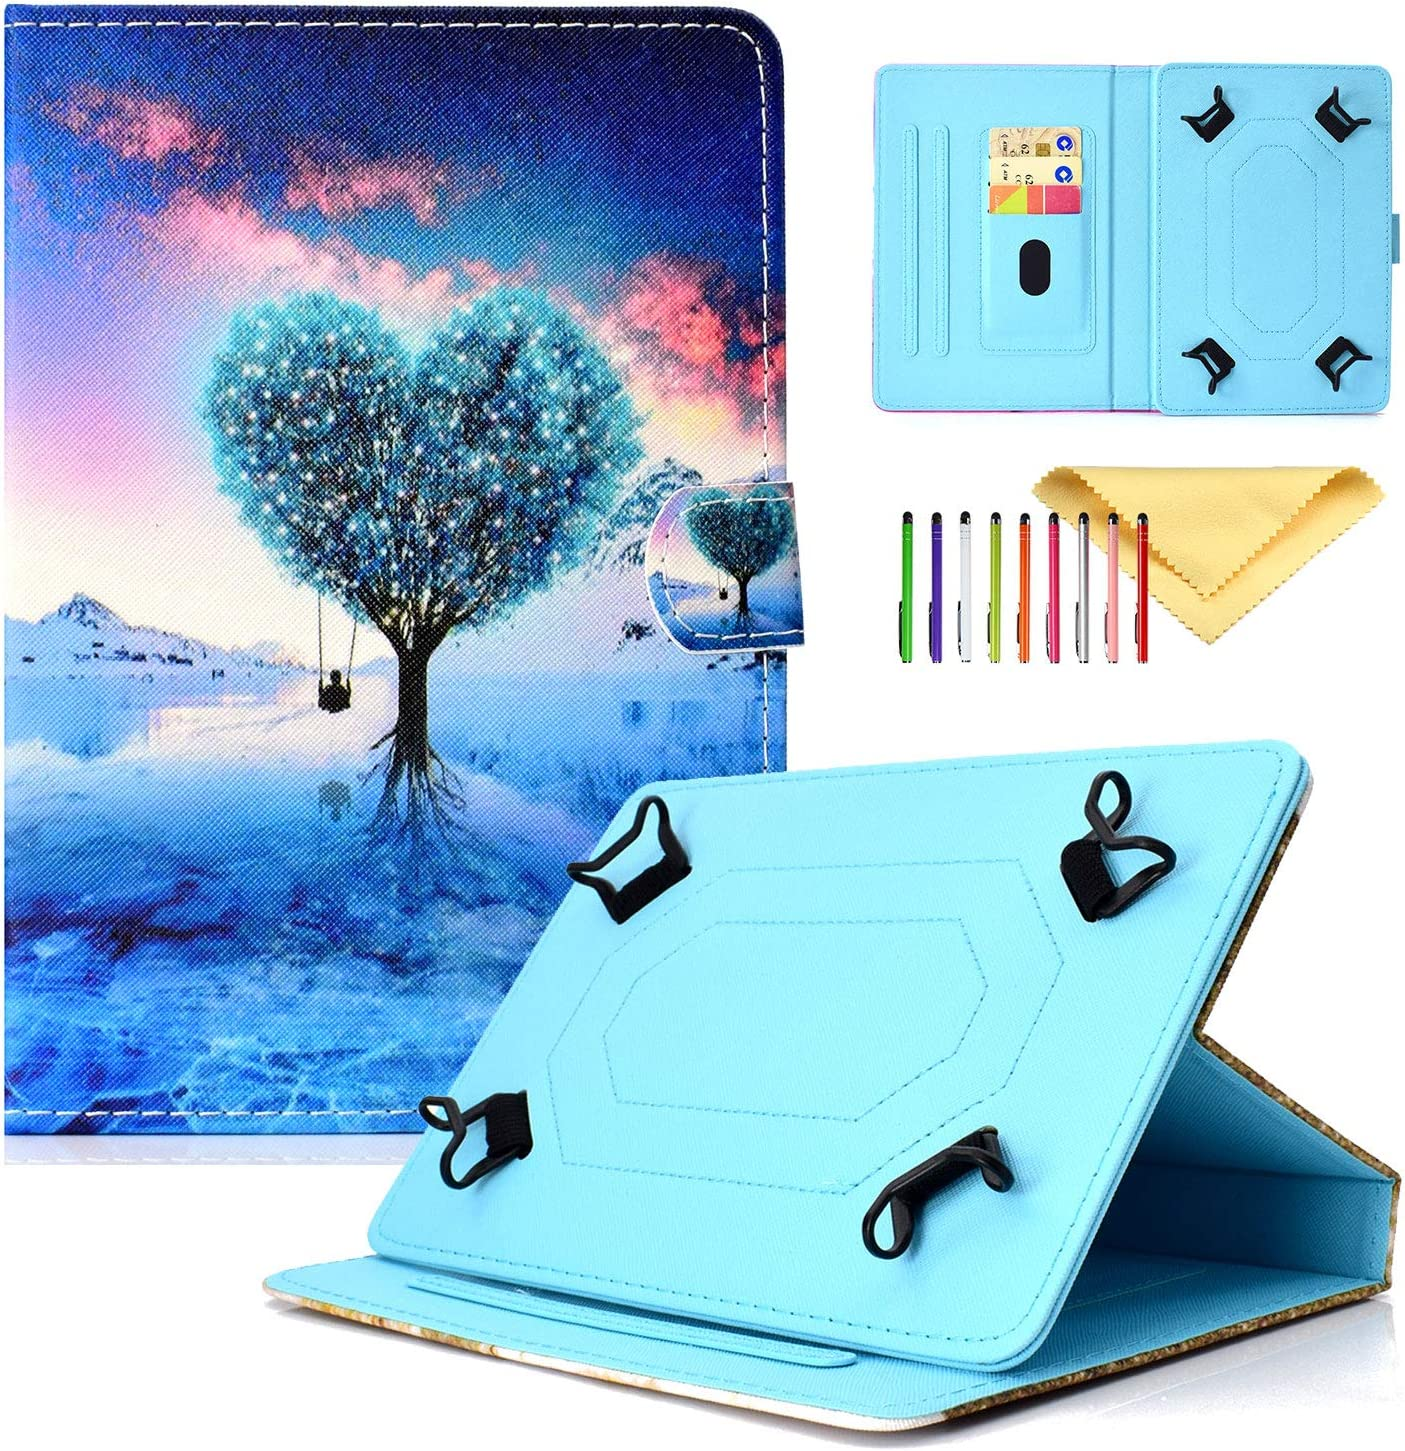 Cookk Universal Cases and Covers for iPad T Mini 1 4 2 Choice 3 Baltimore Mall Galaxy